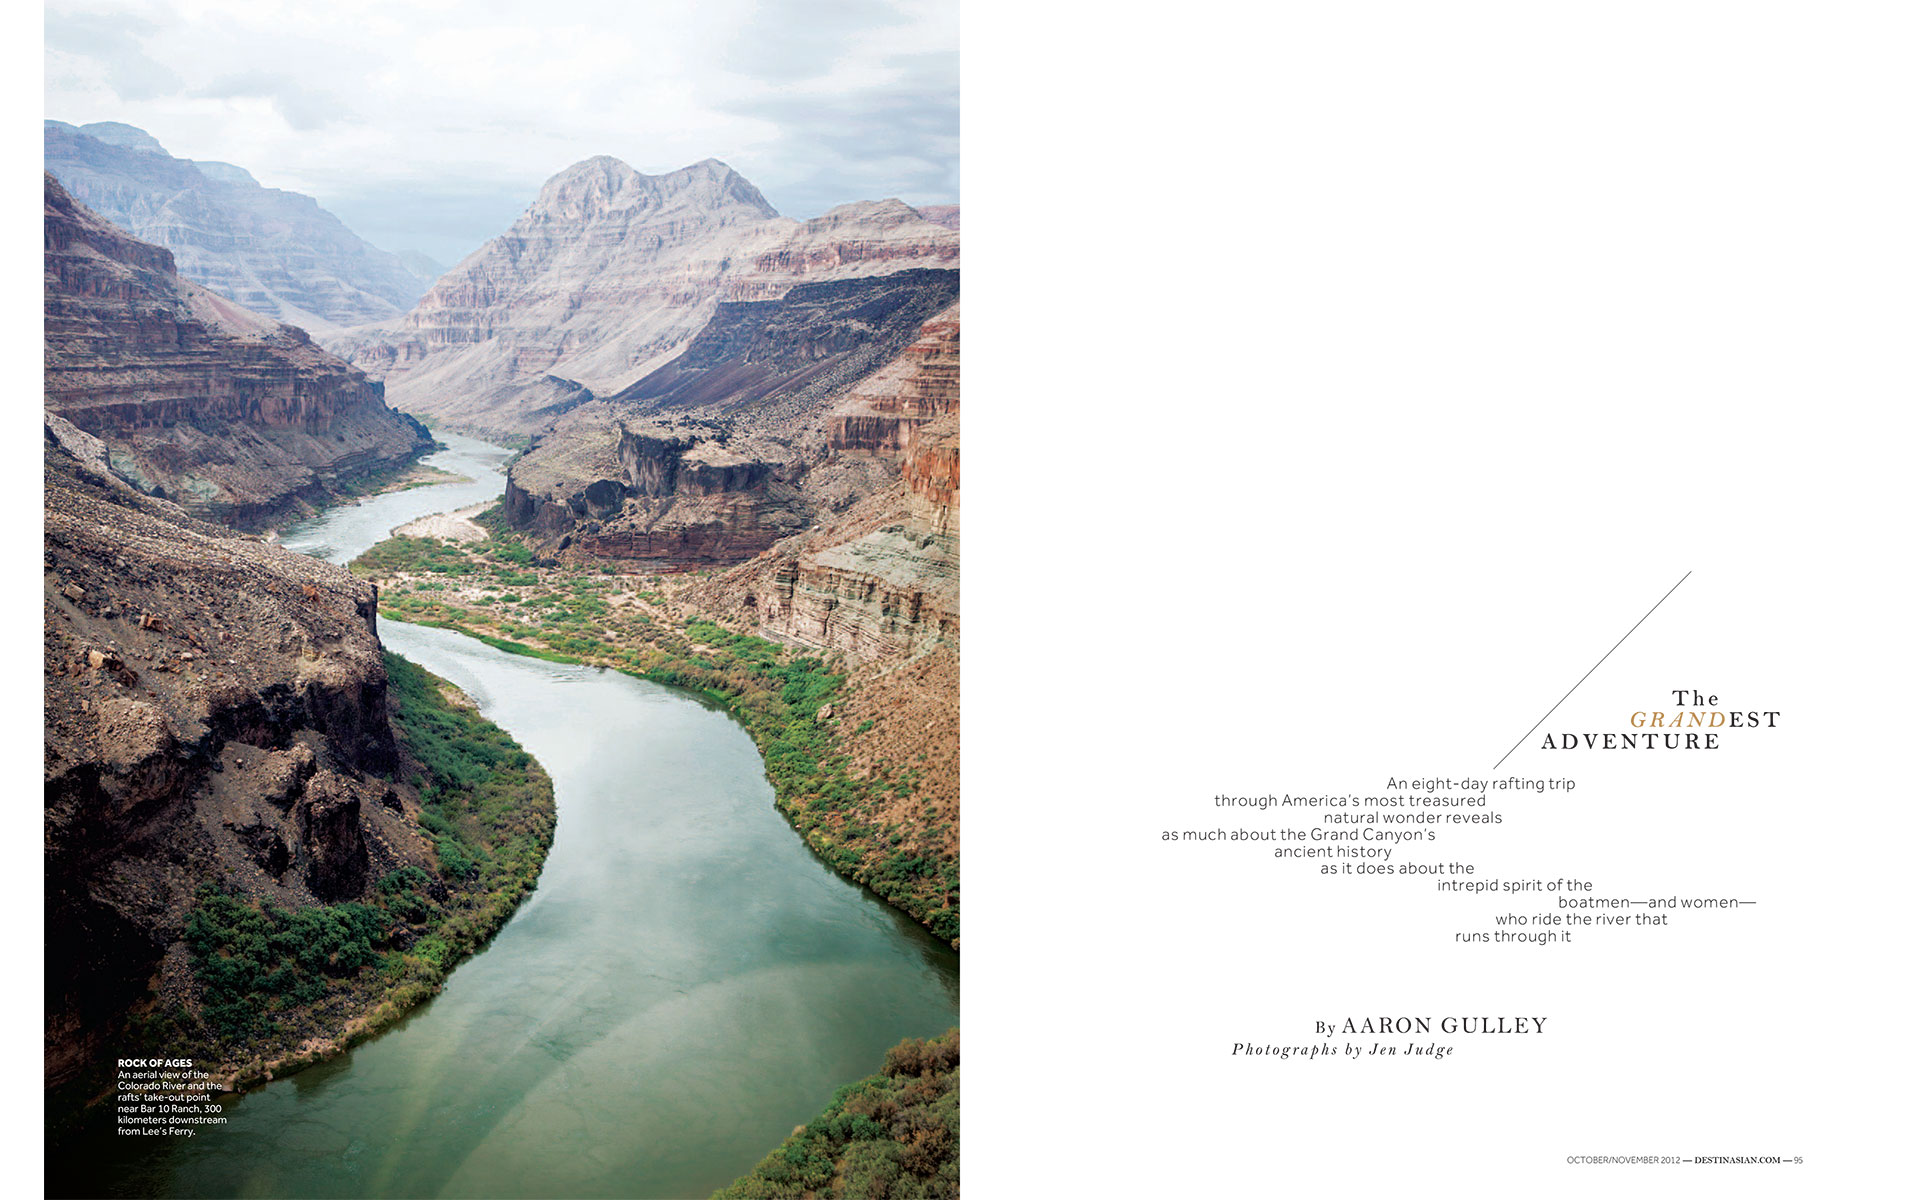 "<p style=""text-align: center;""><b><font color=""2a2871"">The Grandest Adventure, DestinAsian, October 2012</font></b>